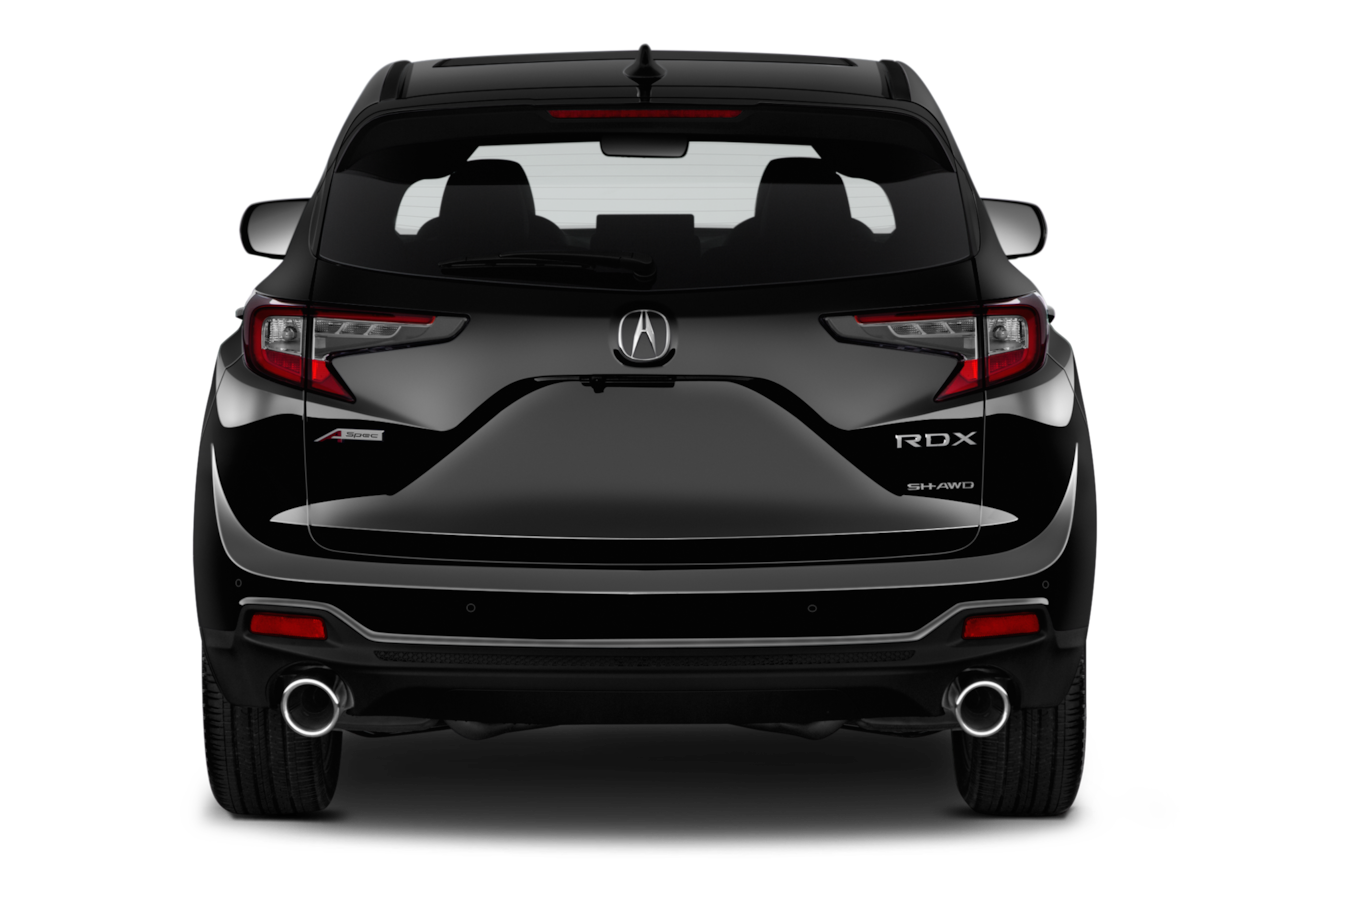 33 Gallery of 2019 Acura Warranty Prices with 2019 Acura Warranty